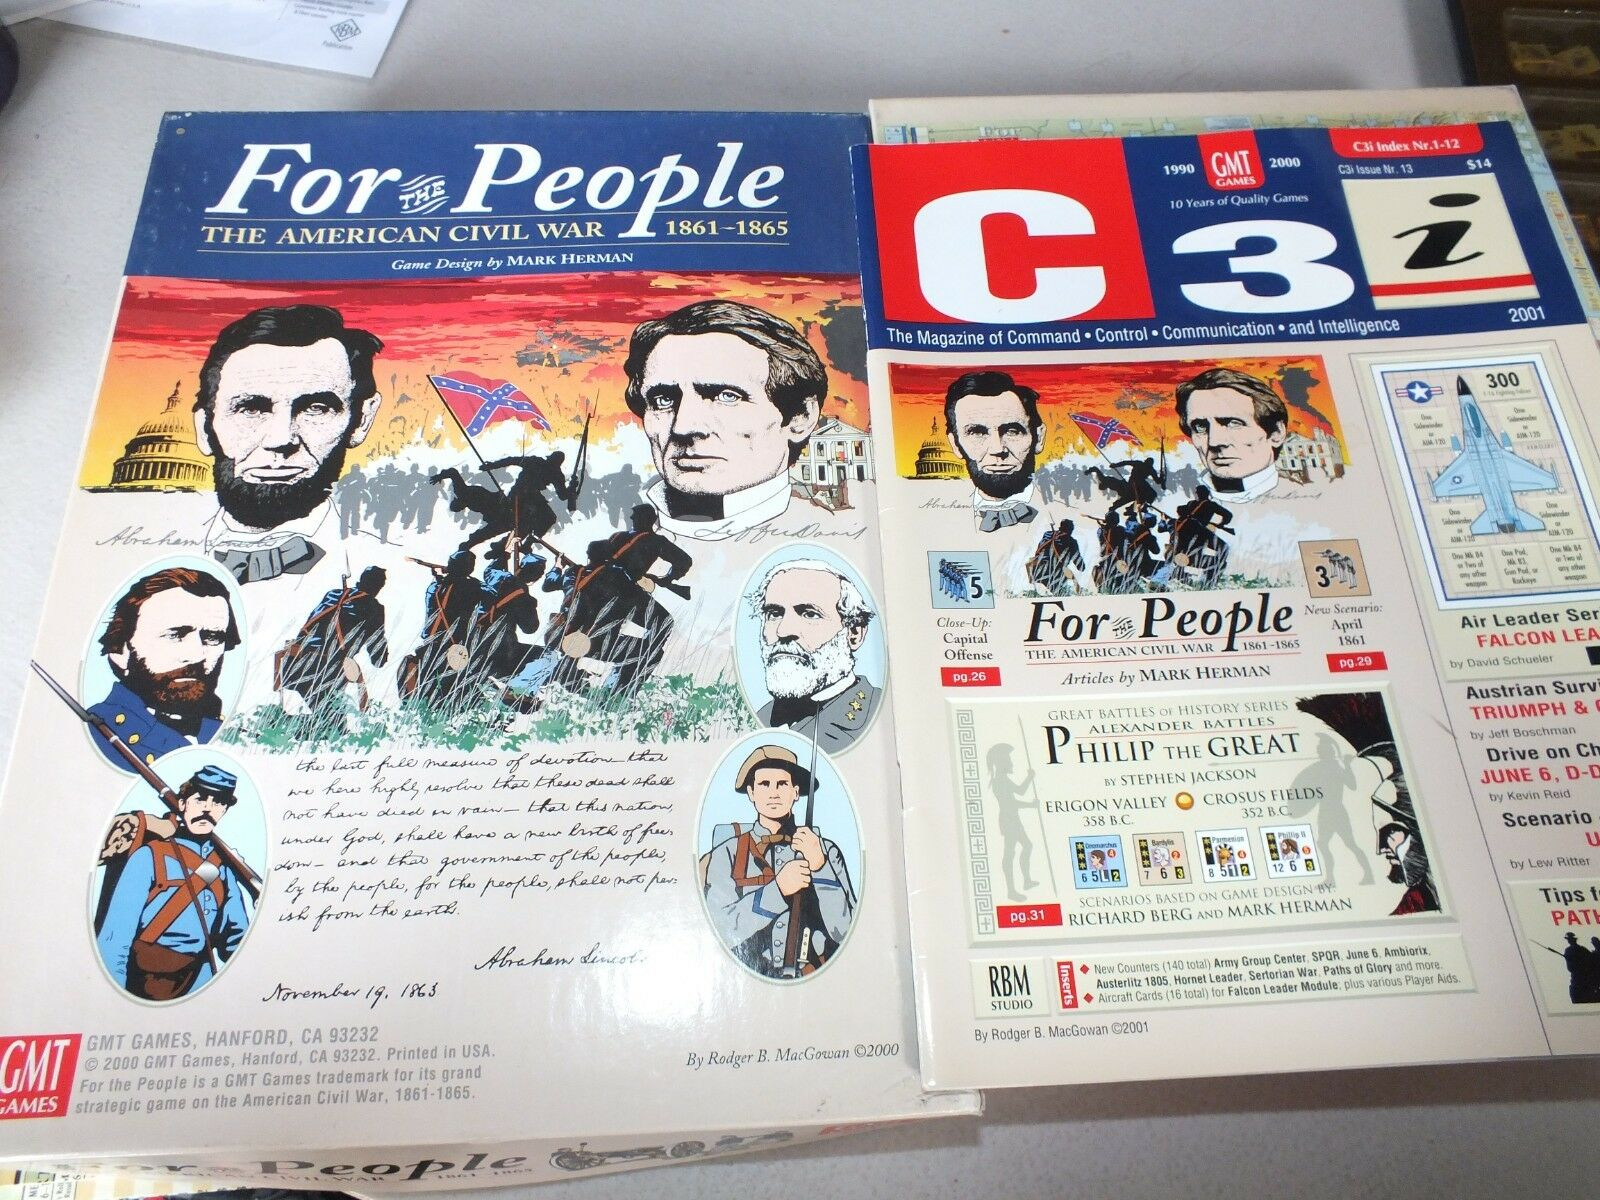 For the People The American Civil War 1861-1865 Game and C3i Mag 13 GMT 0011 LOT